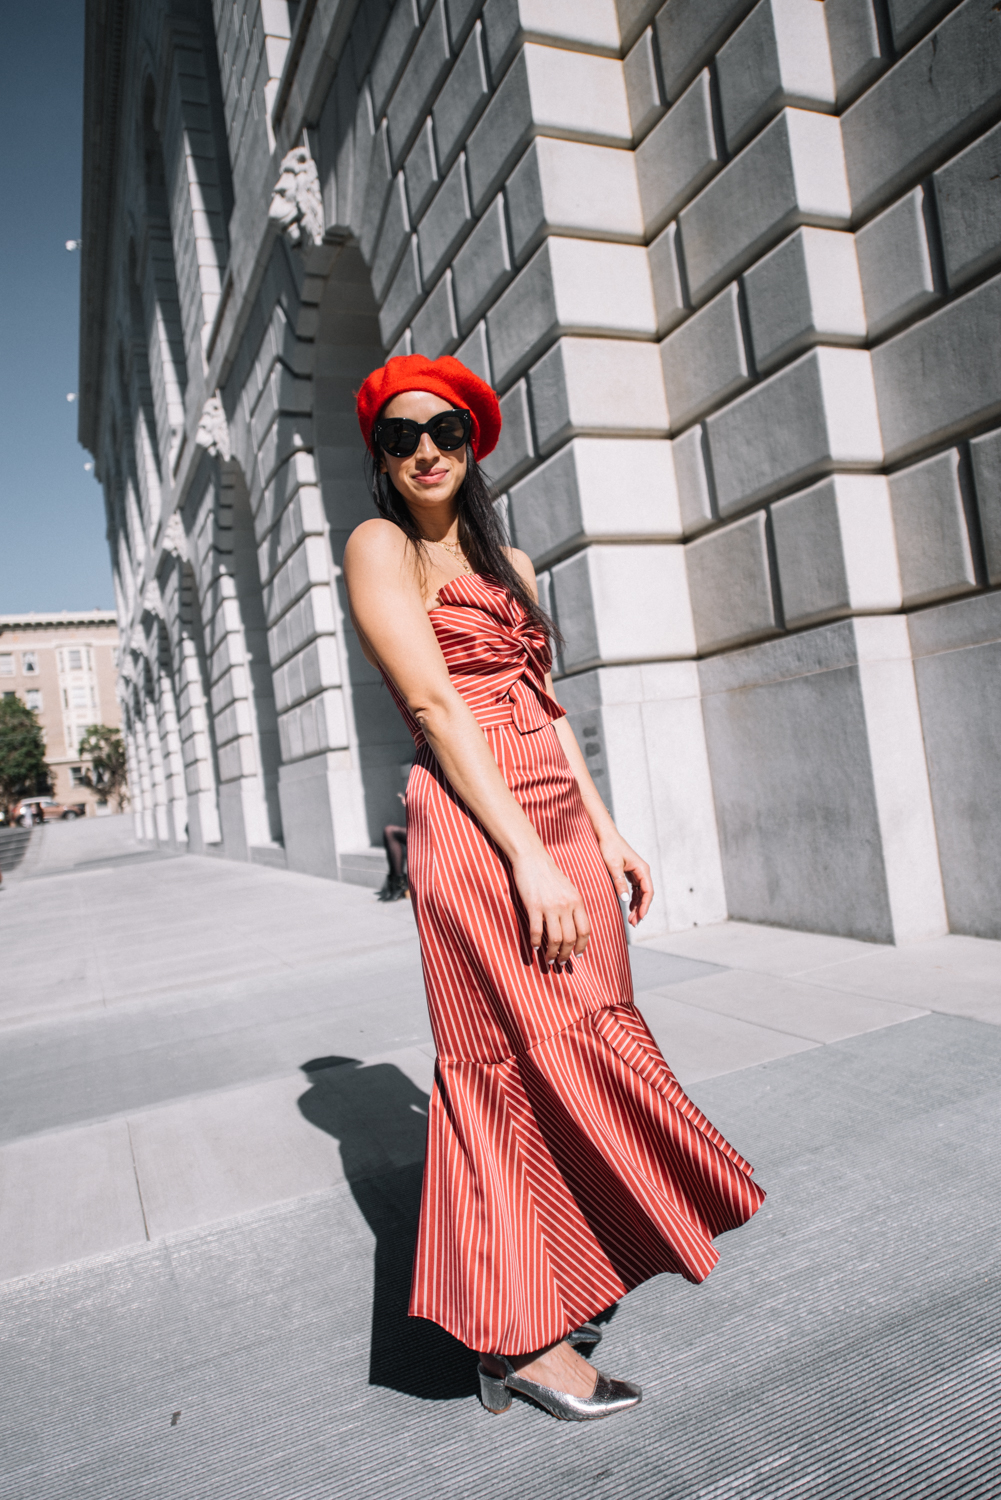 Amur Eva striped dress, AMUR,  AMUR Eva dress, San Francisco fashion blogger, metallic shoes, red beret, beret trend 2018